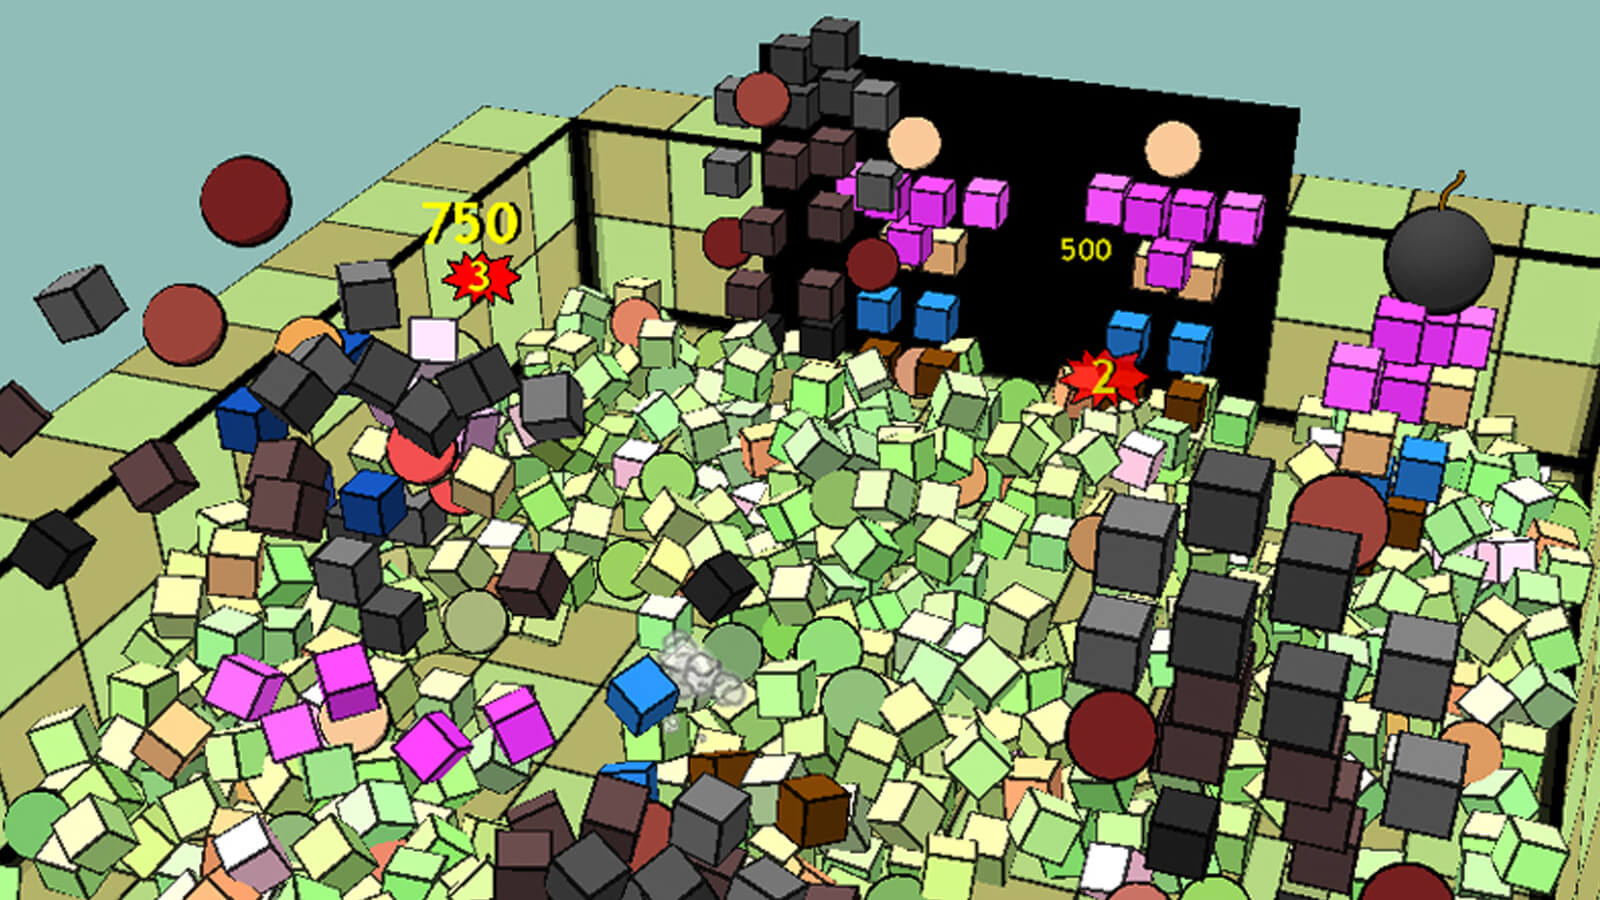 Waves of geometric people smash each other into blocks littering the room.